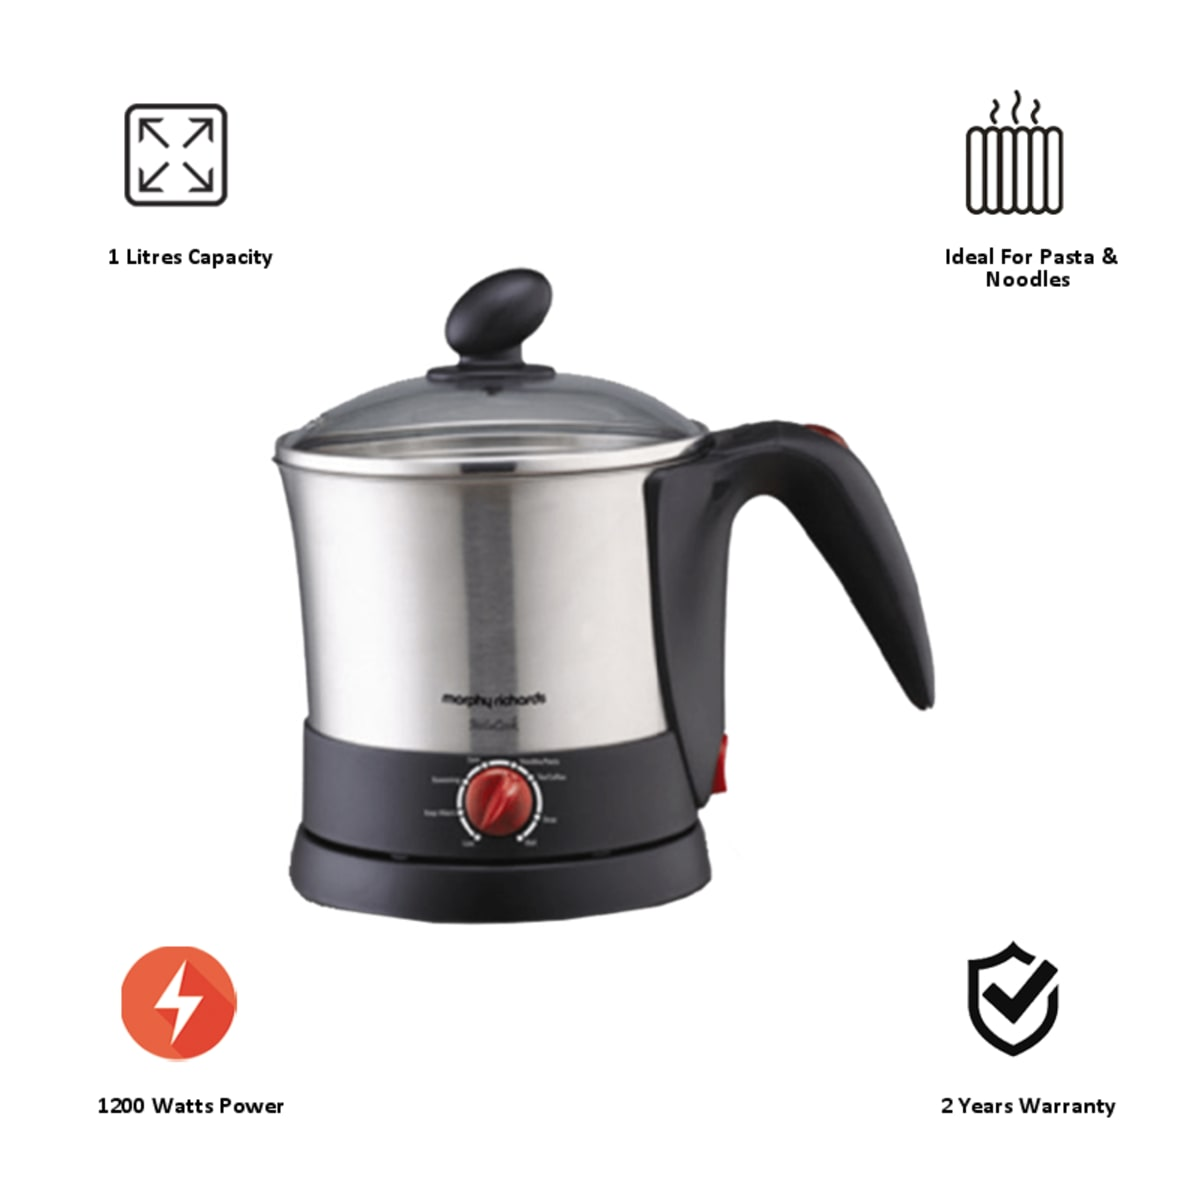 Morphy Richards Instacook 1 Litre Electric Kettle (590013, Silver)_6